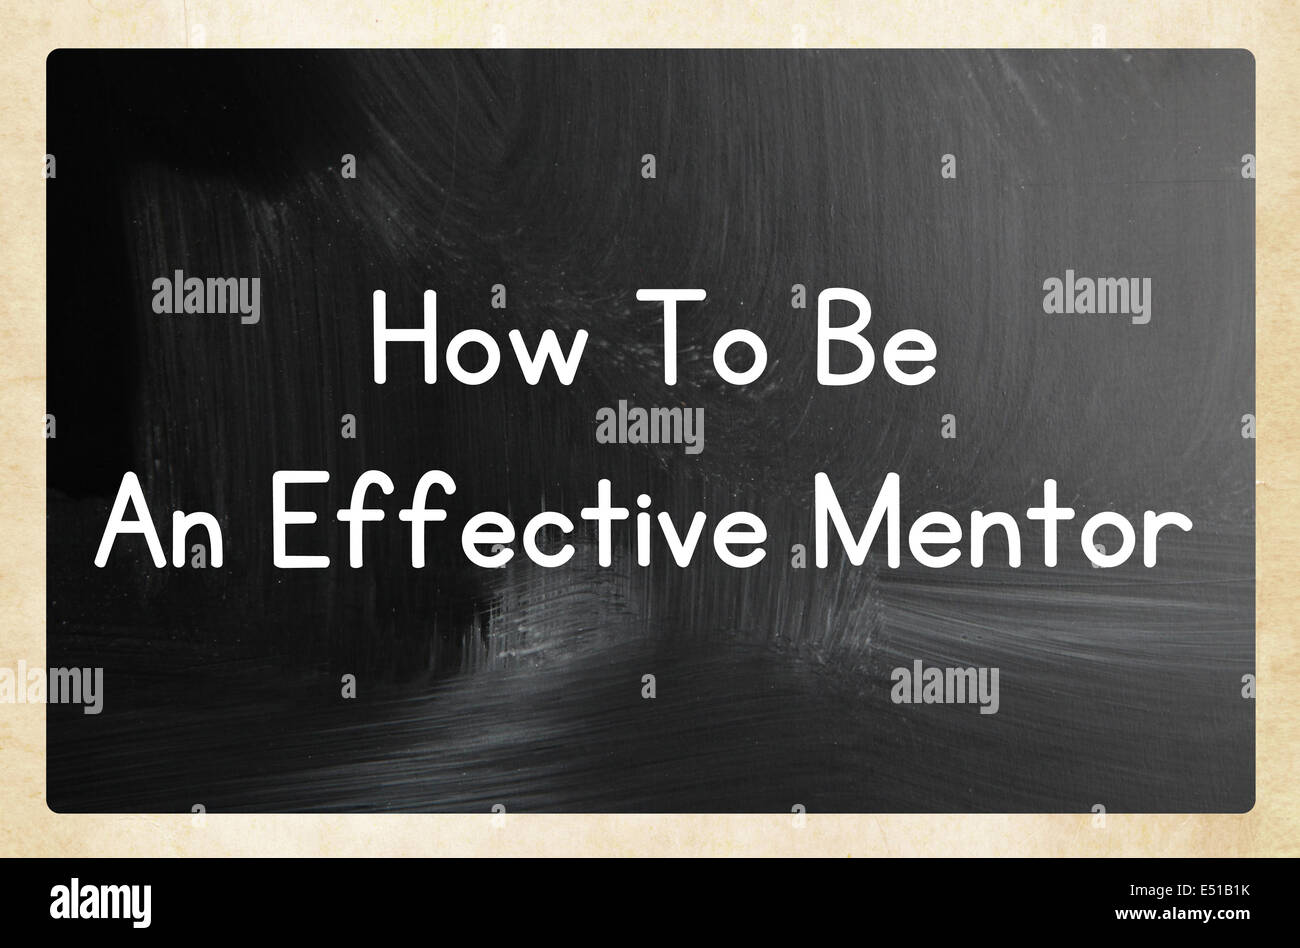 how to be an effective mentor - Stock Image